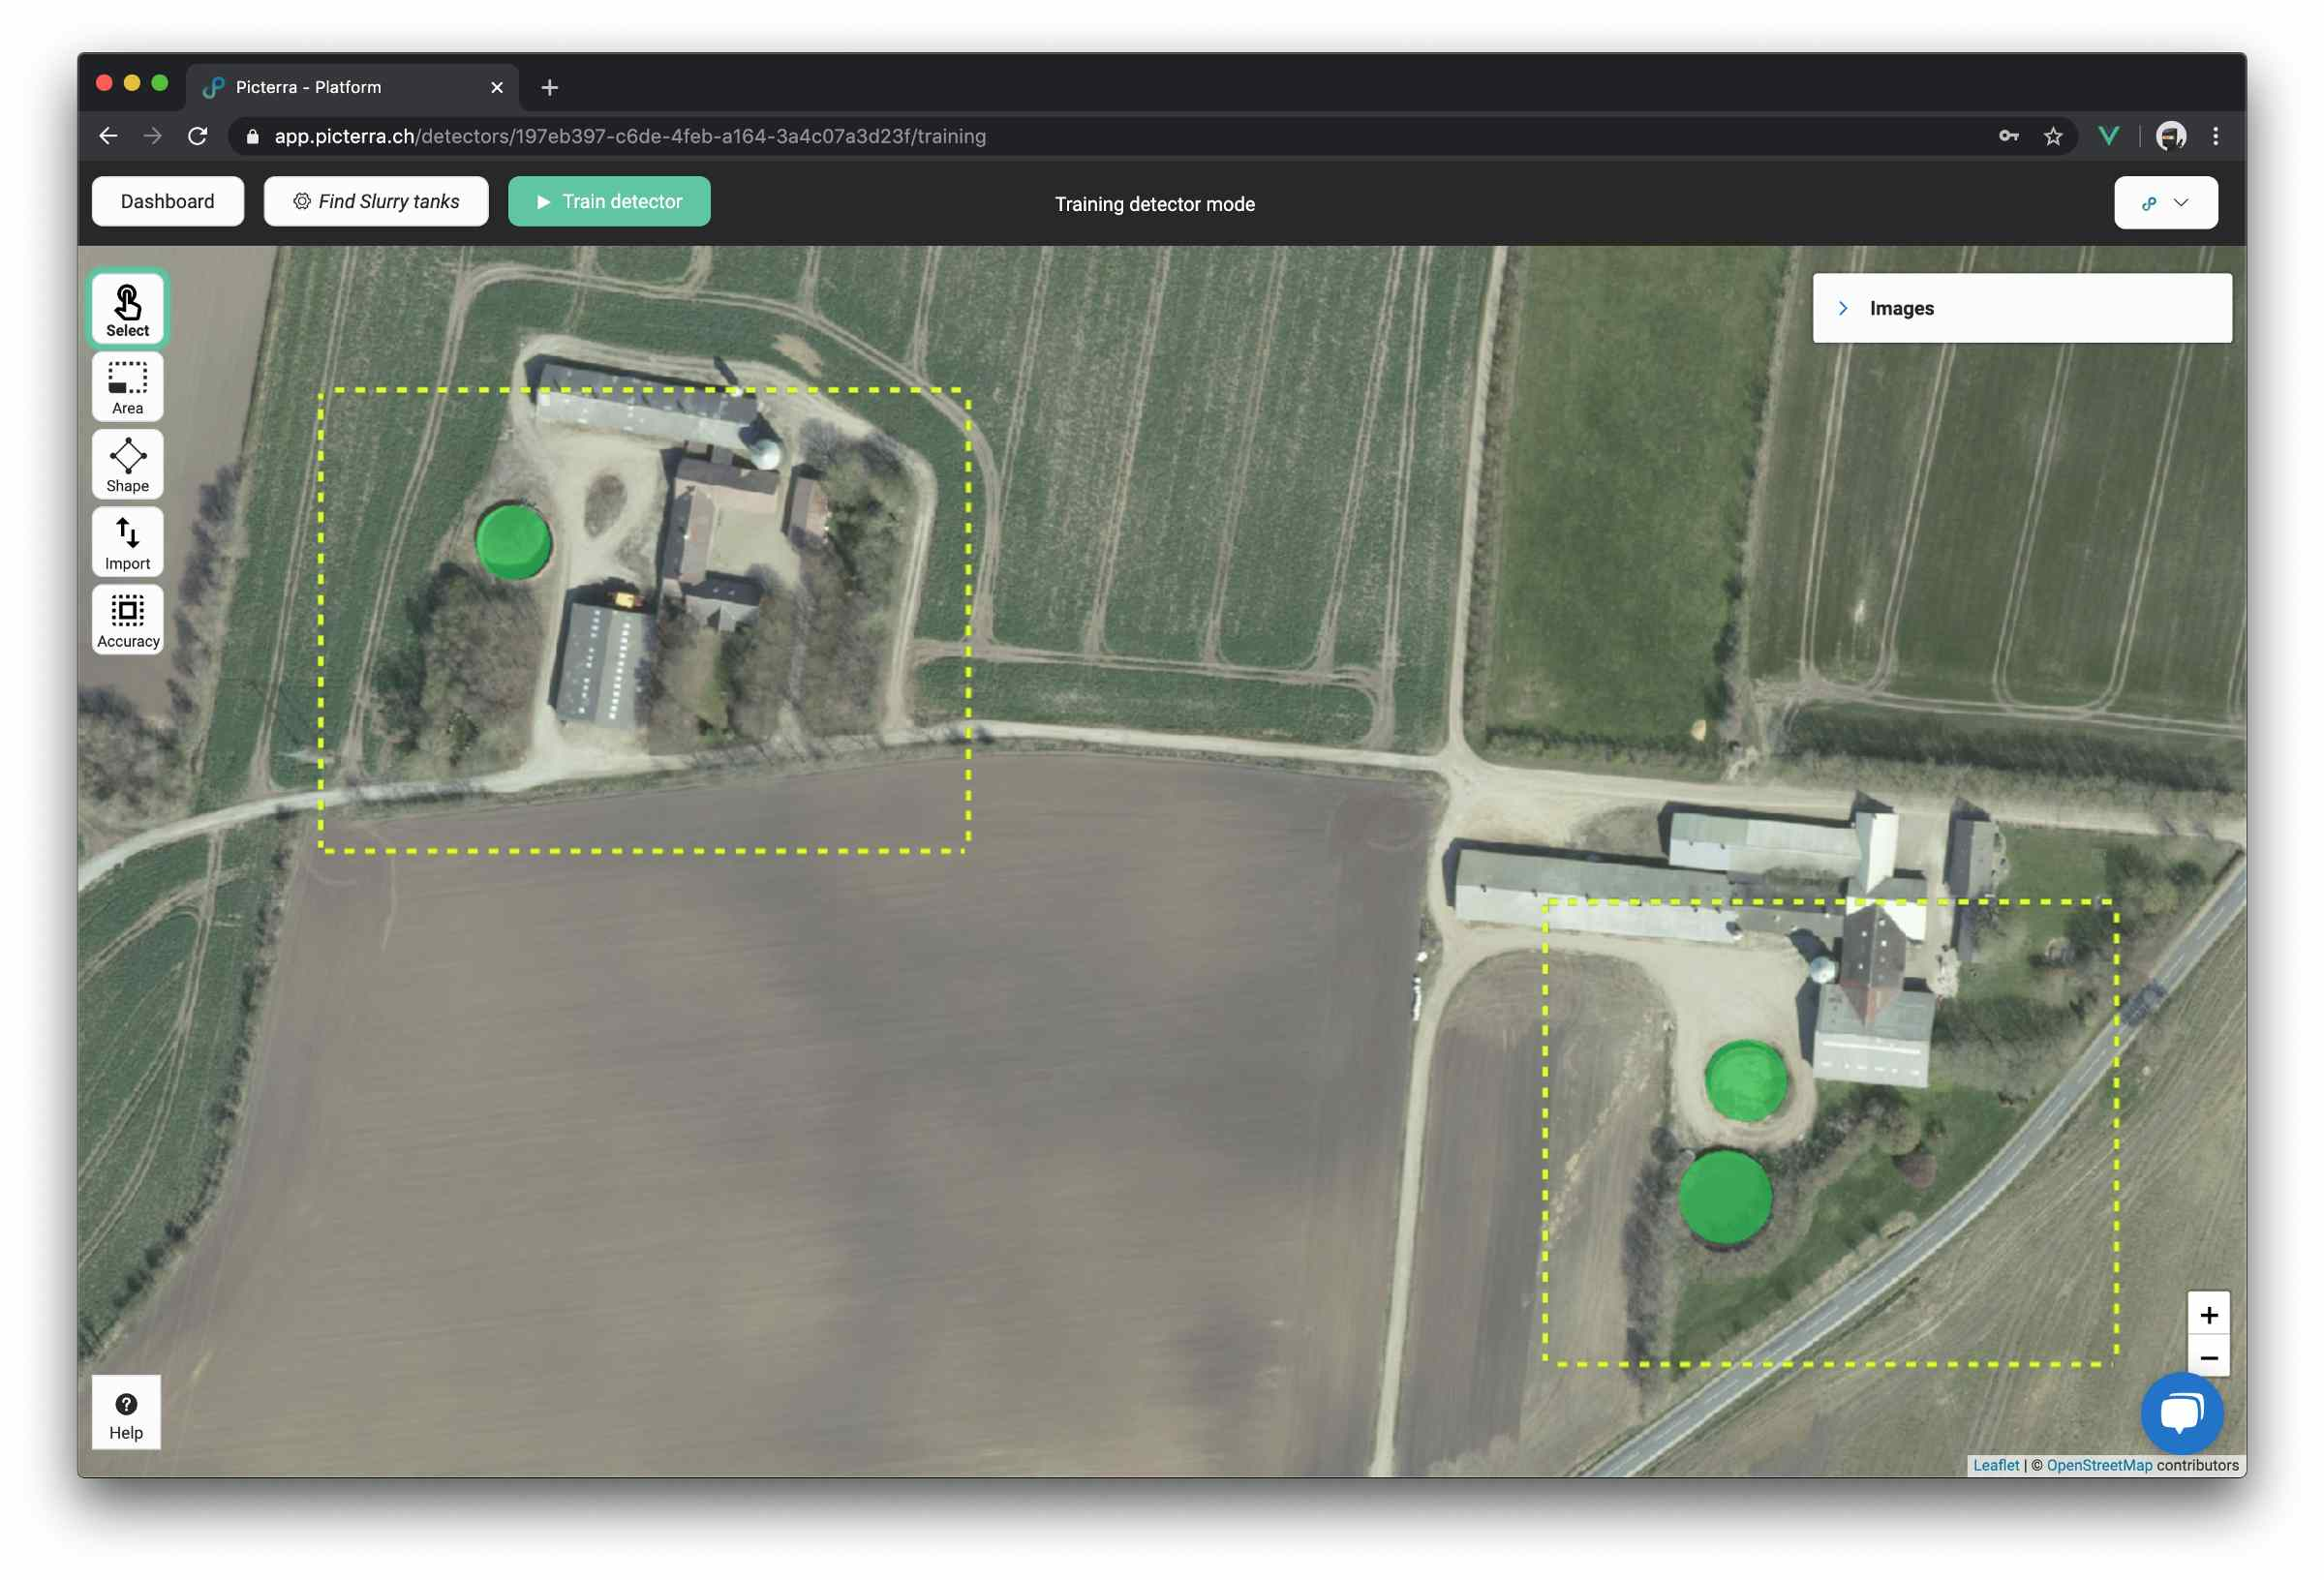 Example of training areas (yellow rectangles) with annotated slurry tanks (green circle).